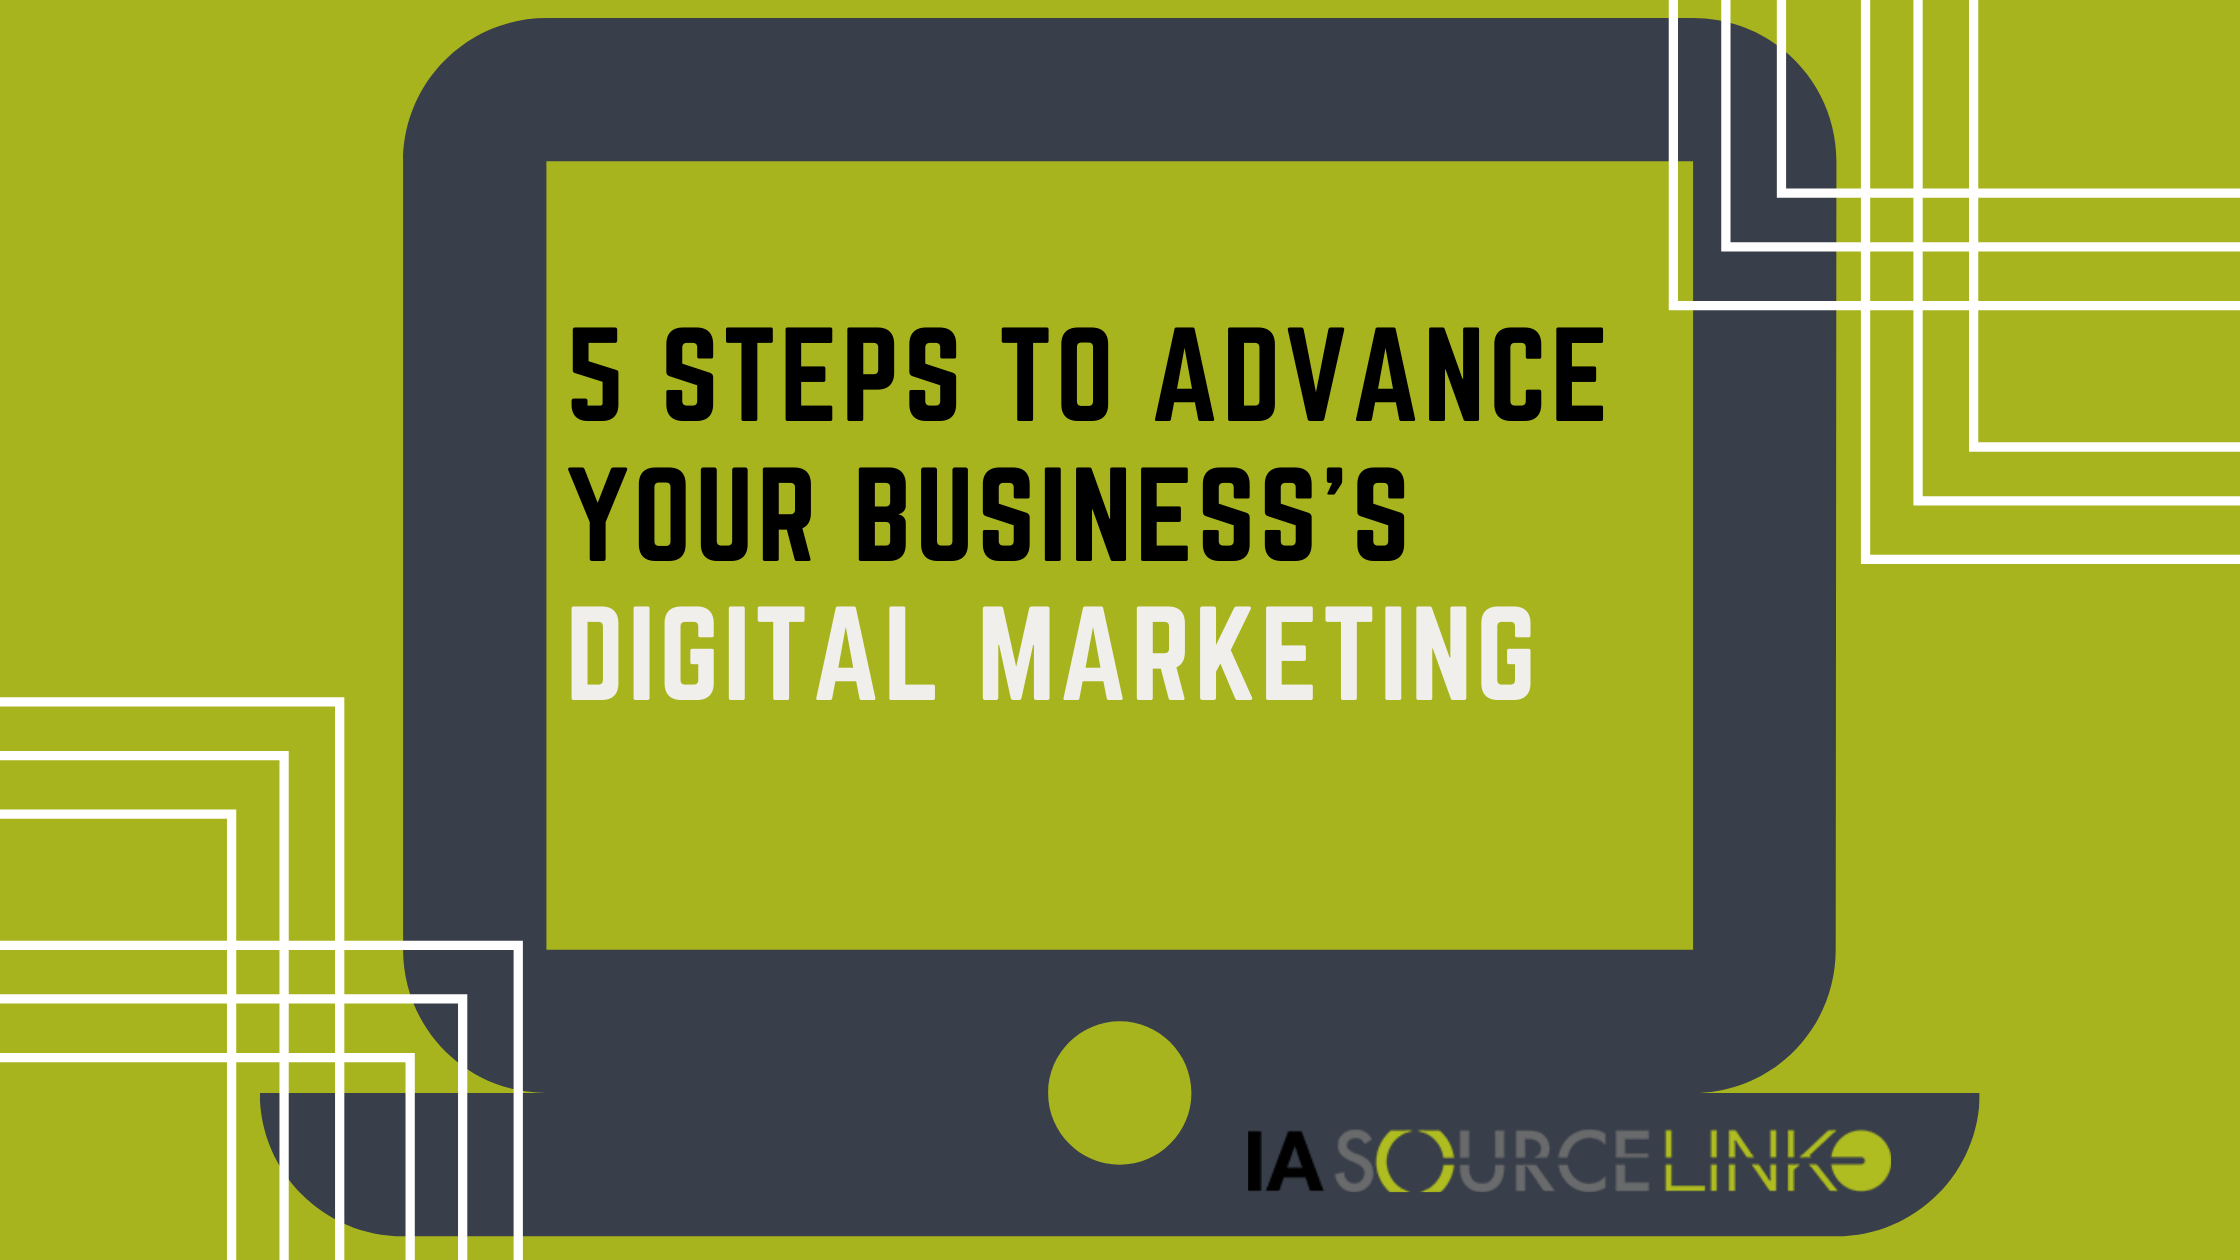 5 Steps to improve your Business's Digital Marketing